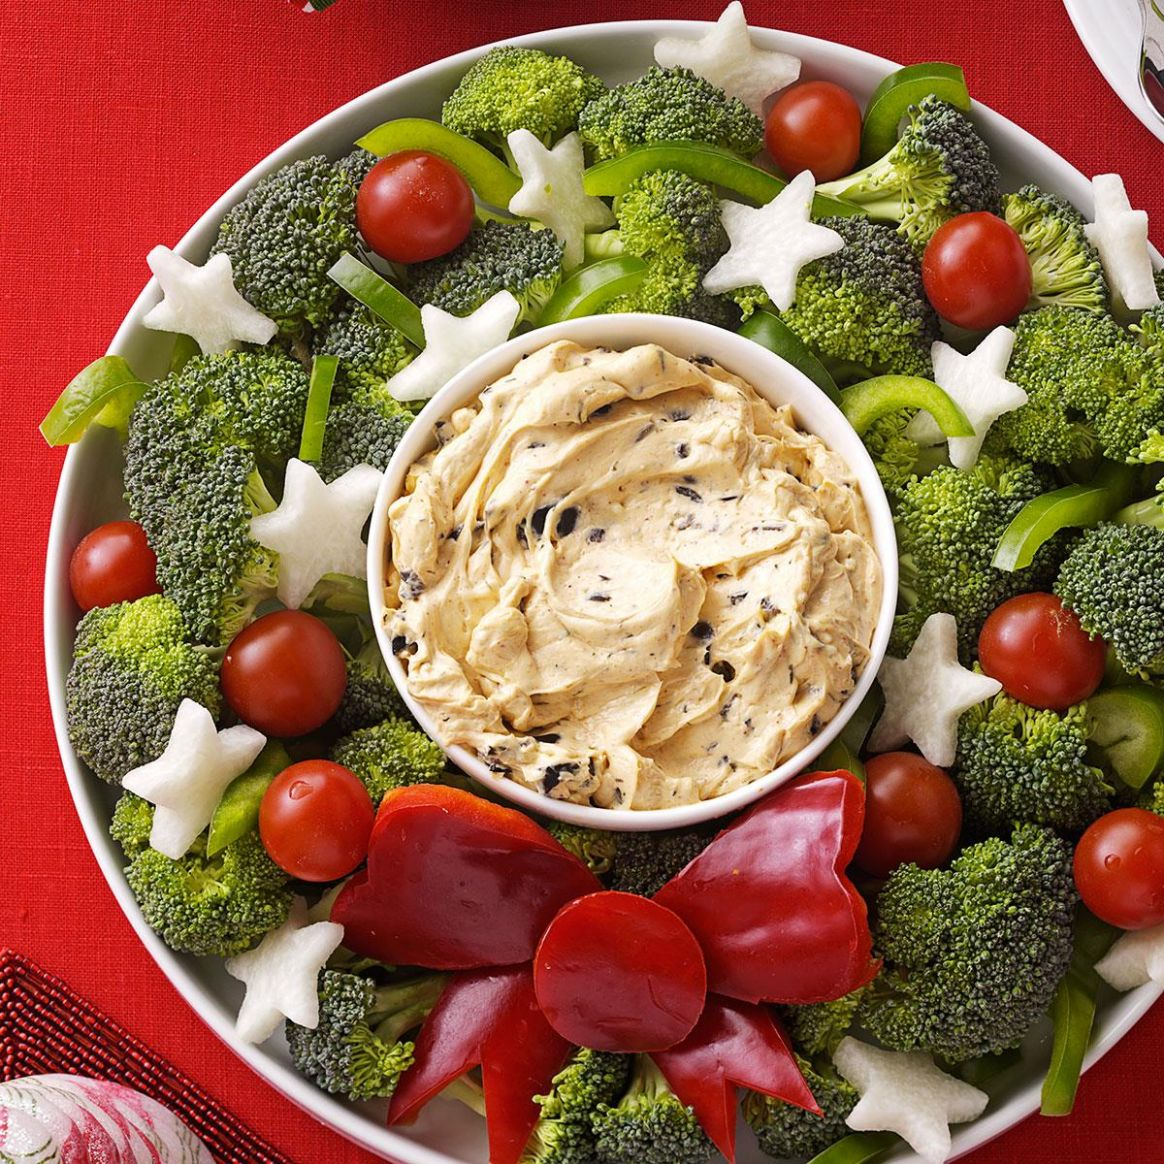 Vegetable Wreath with Dip - Recipes Vegetable Dip